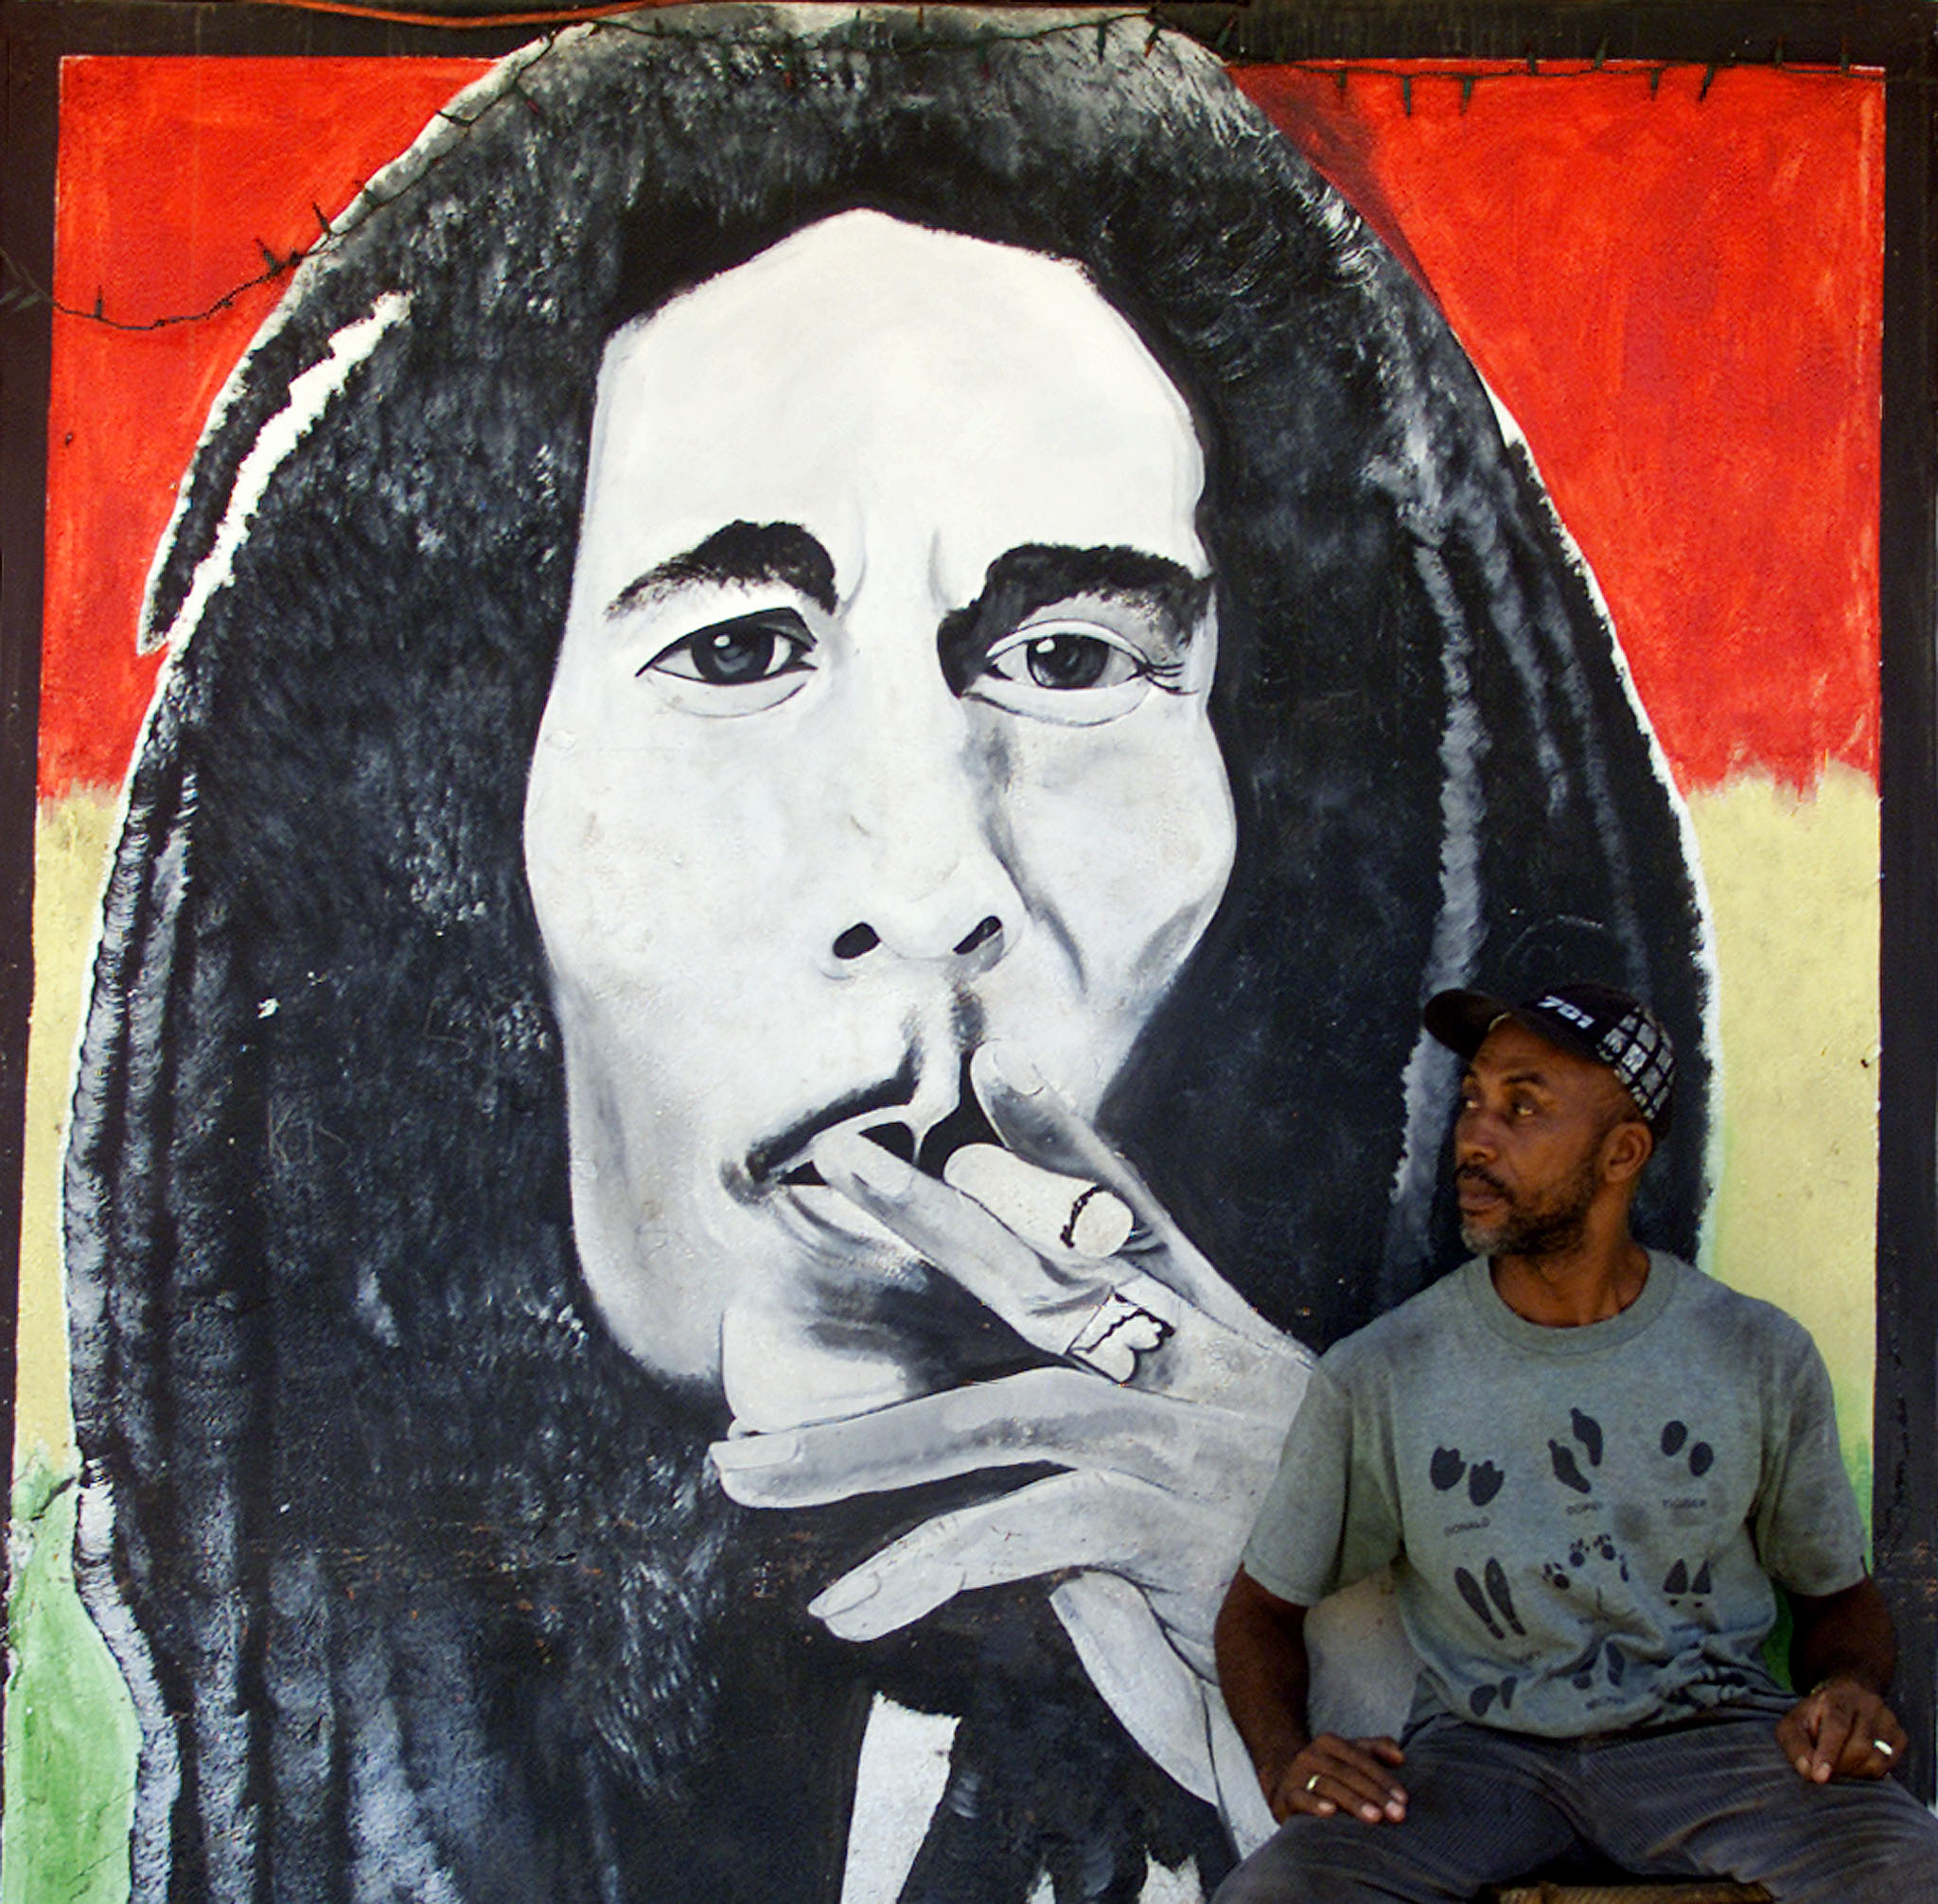 A MAN SITS BY A MURAL OF JAMAICAN REGGAE MASTER BOB MARLEY IN KINGSTON.